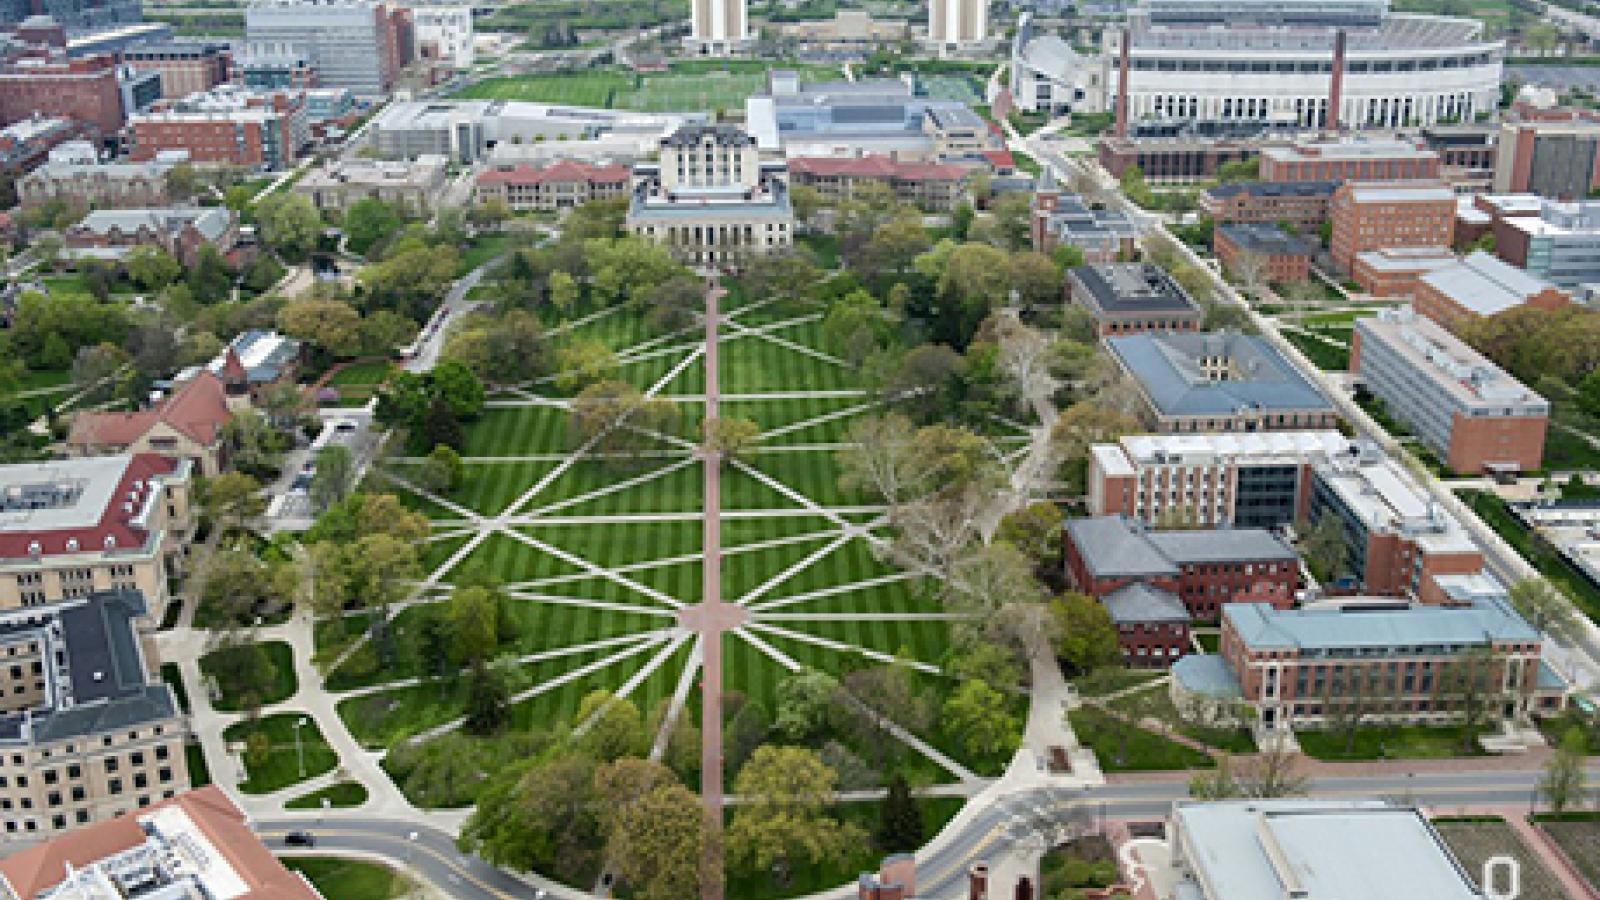 Aeriel view of the Oval Mall at Ohio State University